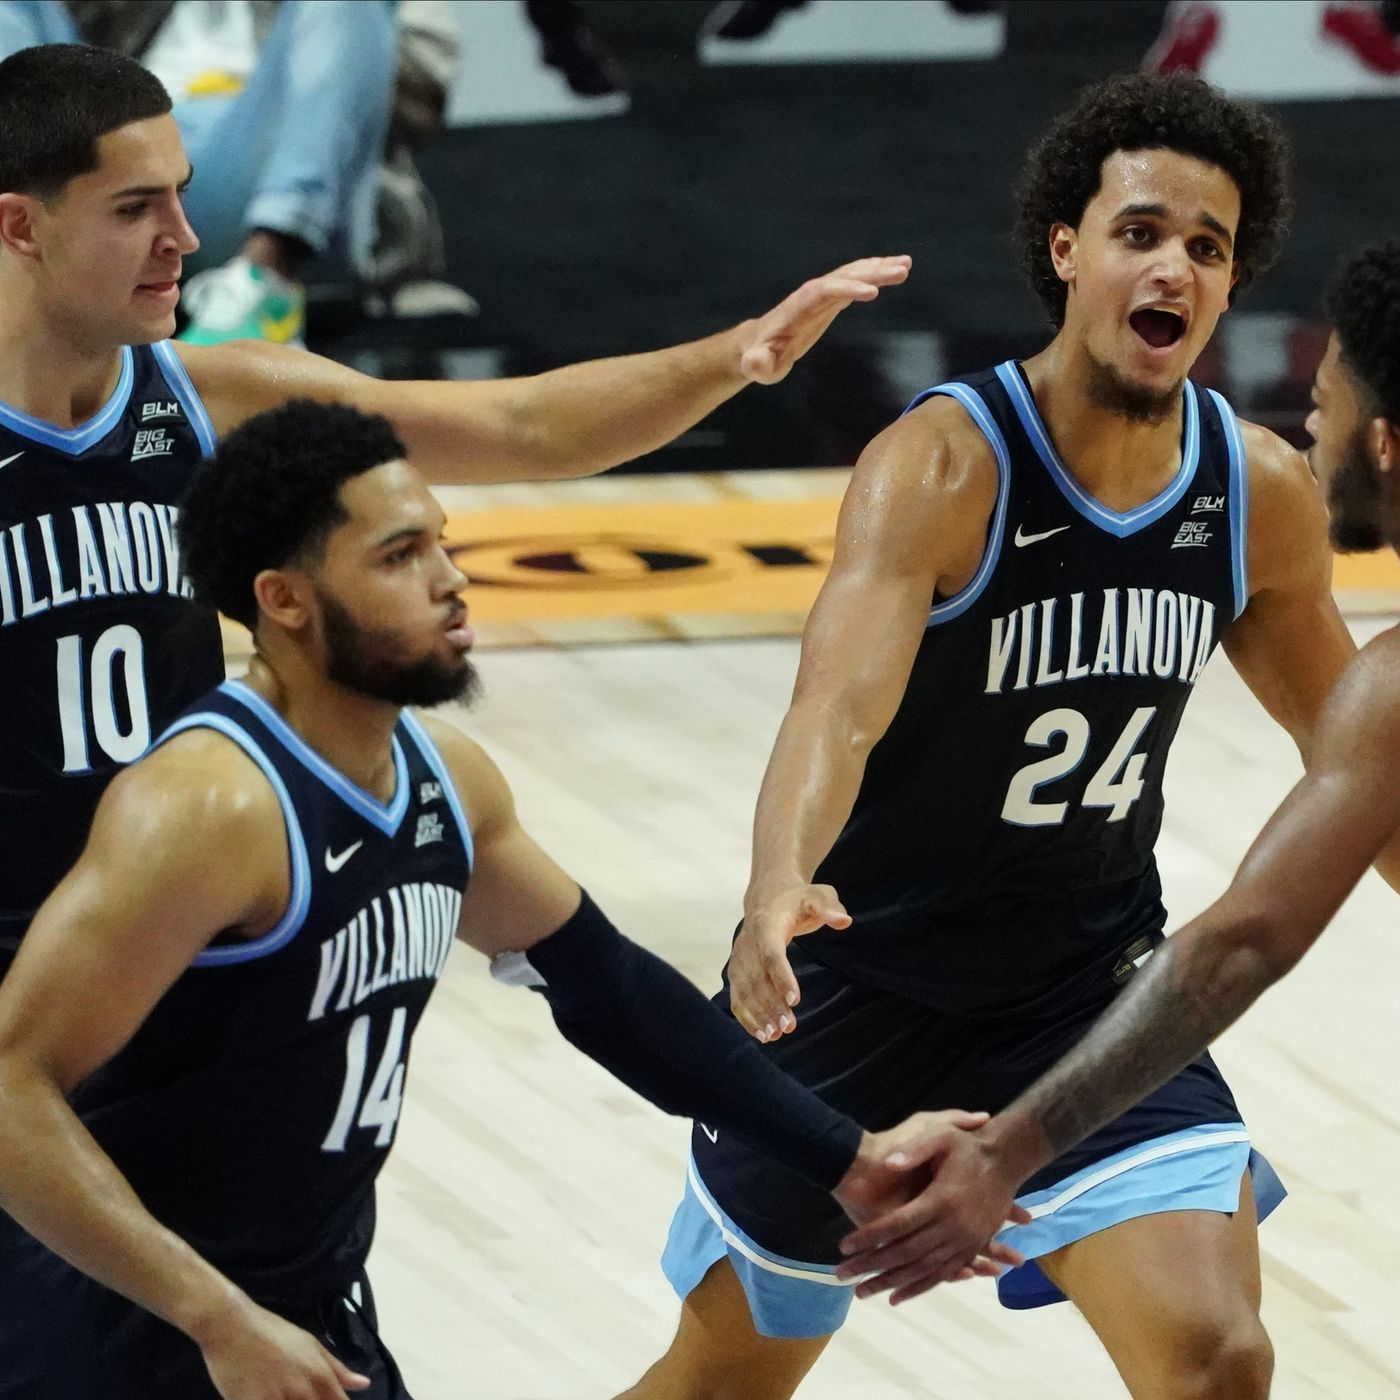 No 3 Villanova Vs Virginia Tech How To Watch Stream Odds And More Big East Coast Bias